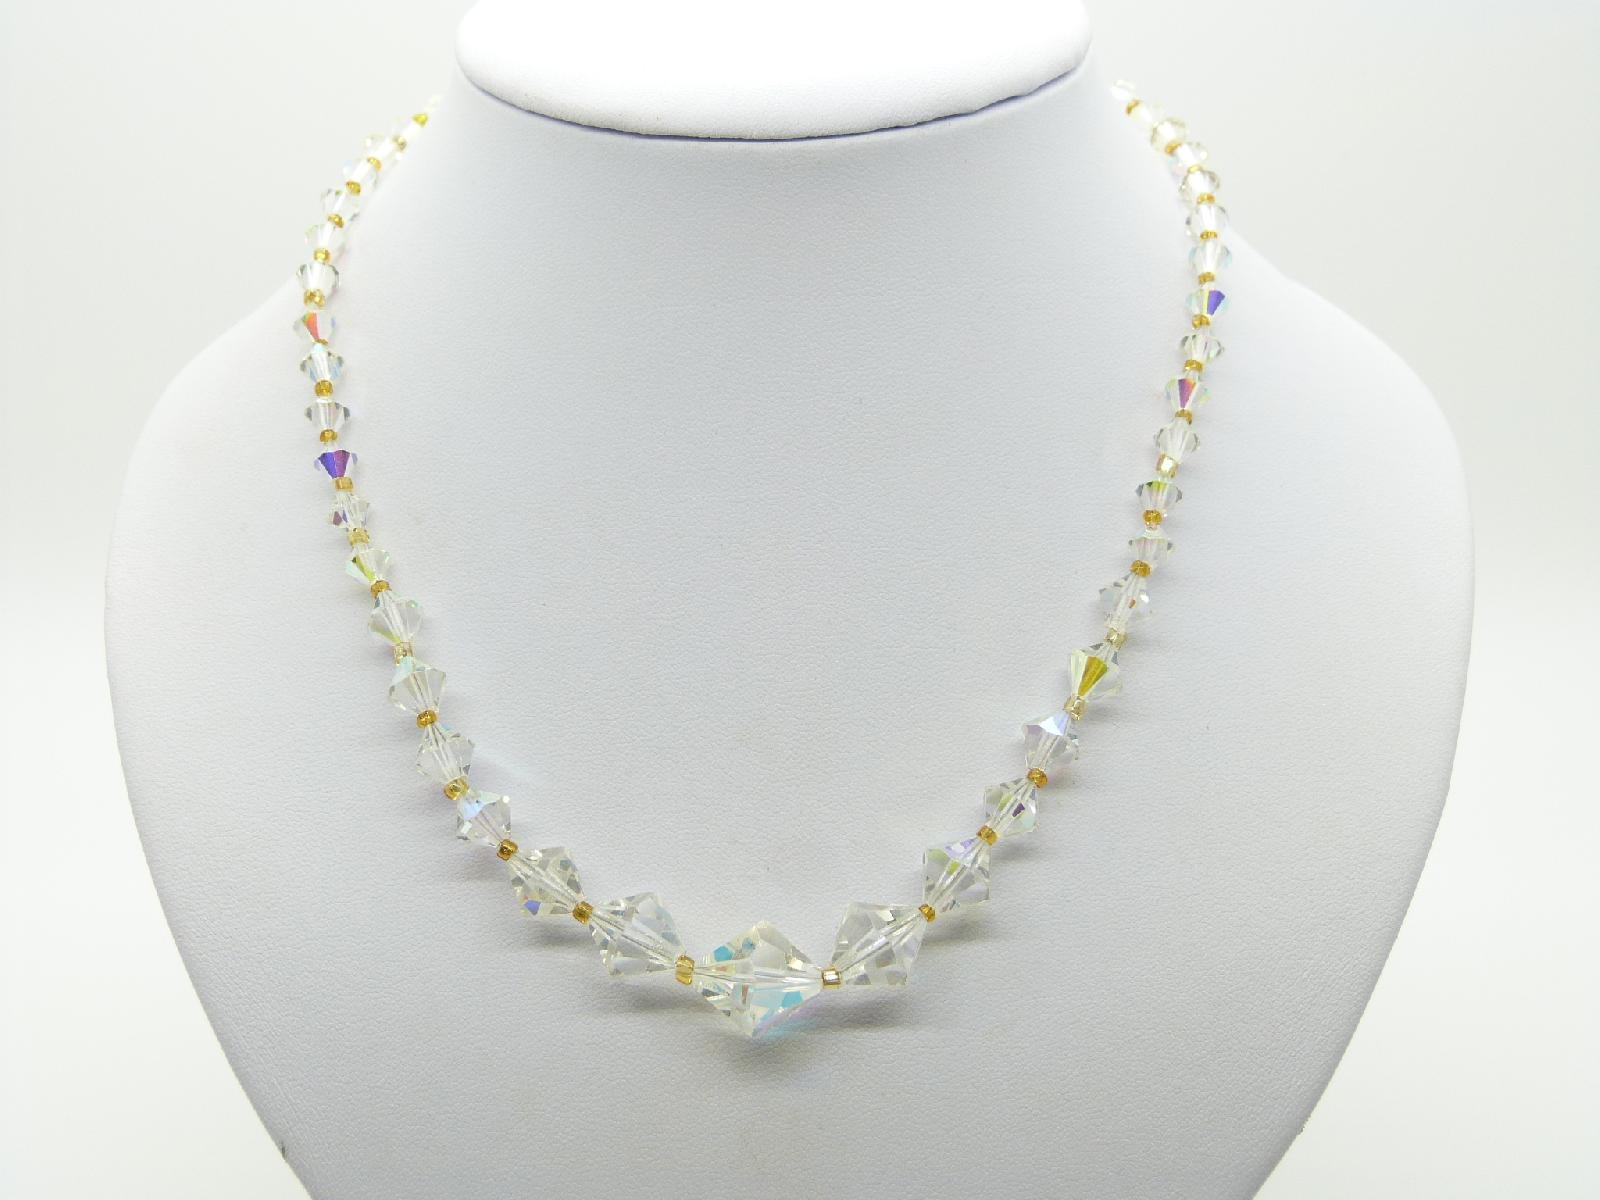 £13.00 - Vintage 50s Lovely AB Crystal Glass Bead Necklace Silver Diamante Clasp 44cms